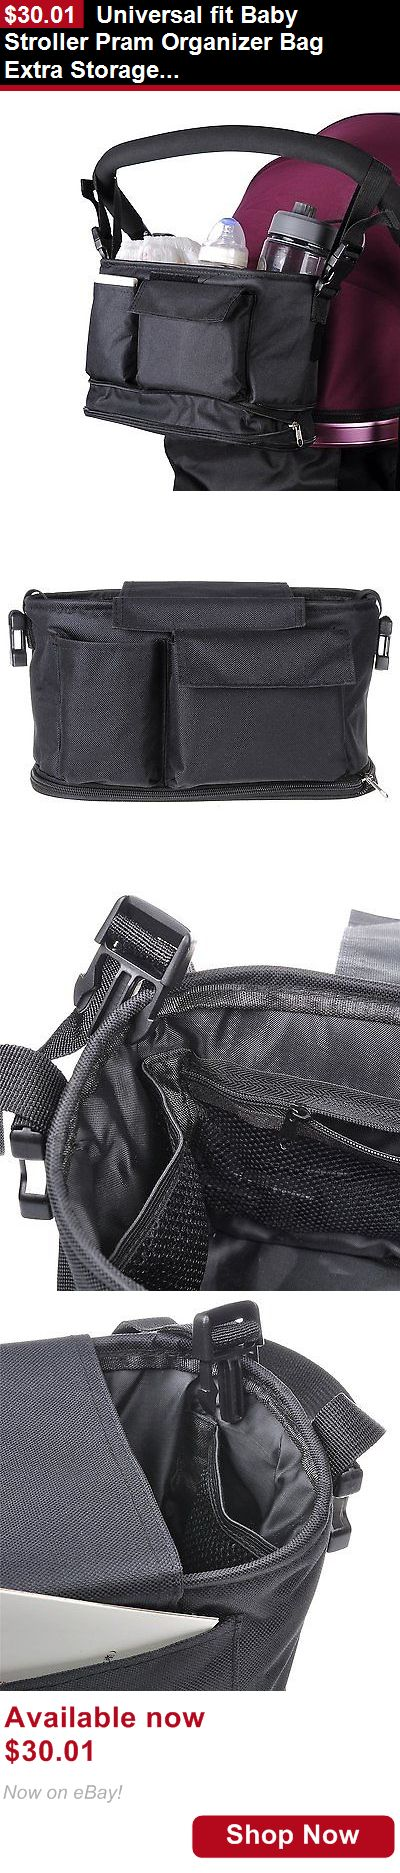 Organizers And Nets: Universal Fit Baby Stroller Pram Organizer Bag Extra Storage 2 Cup Holders Strap BUY IT NOW ONLY: $30.01